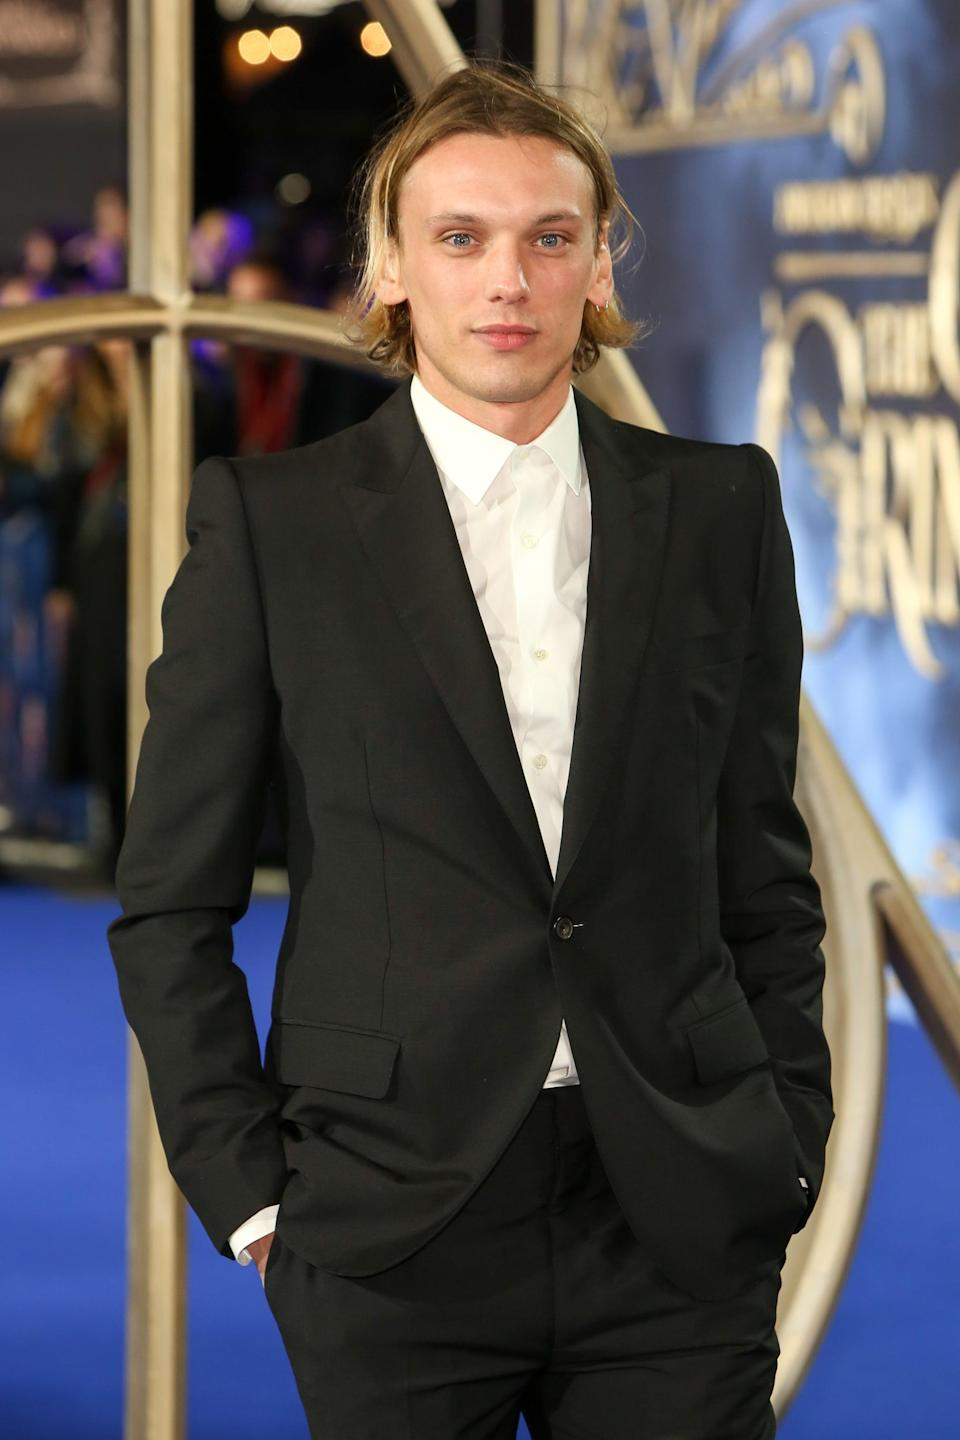 "<p>A veteran of sci-fi and fantasy franchises like <strong>Fantastic Beasts</strong> and <strong>The Mortal Instruments</strong>, Campbell Bower is set to join <strong><a class=""link rapid-noclick-resp"" href=""https://www.popsugar.com/Stranger-Things"" rel=""nofollow noopener"" target=""_blank"" data-ylk=""slk:Stranger Things"">Stranger Things</a></strong> as Peter Ballard, a caring man who works as an orderly at a psychiatric hospital and is growing tired of the brutality he witnesses there.</p>"